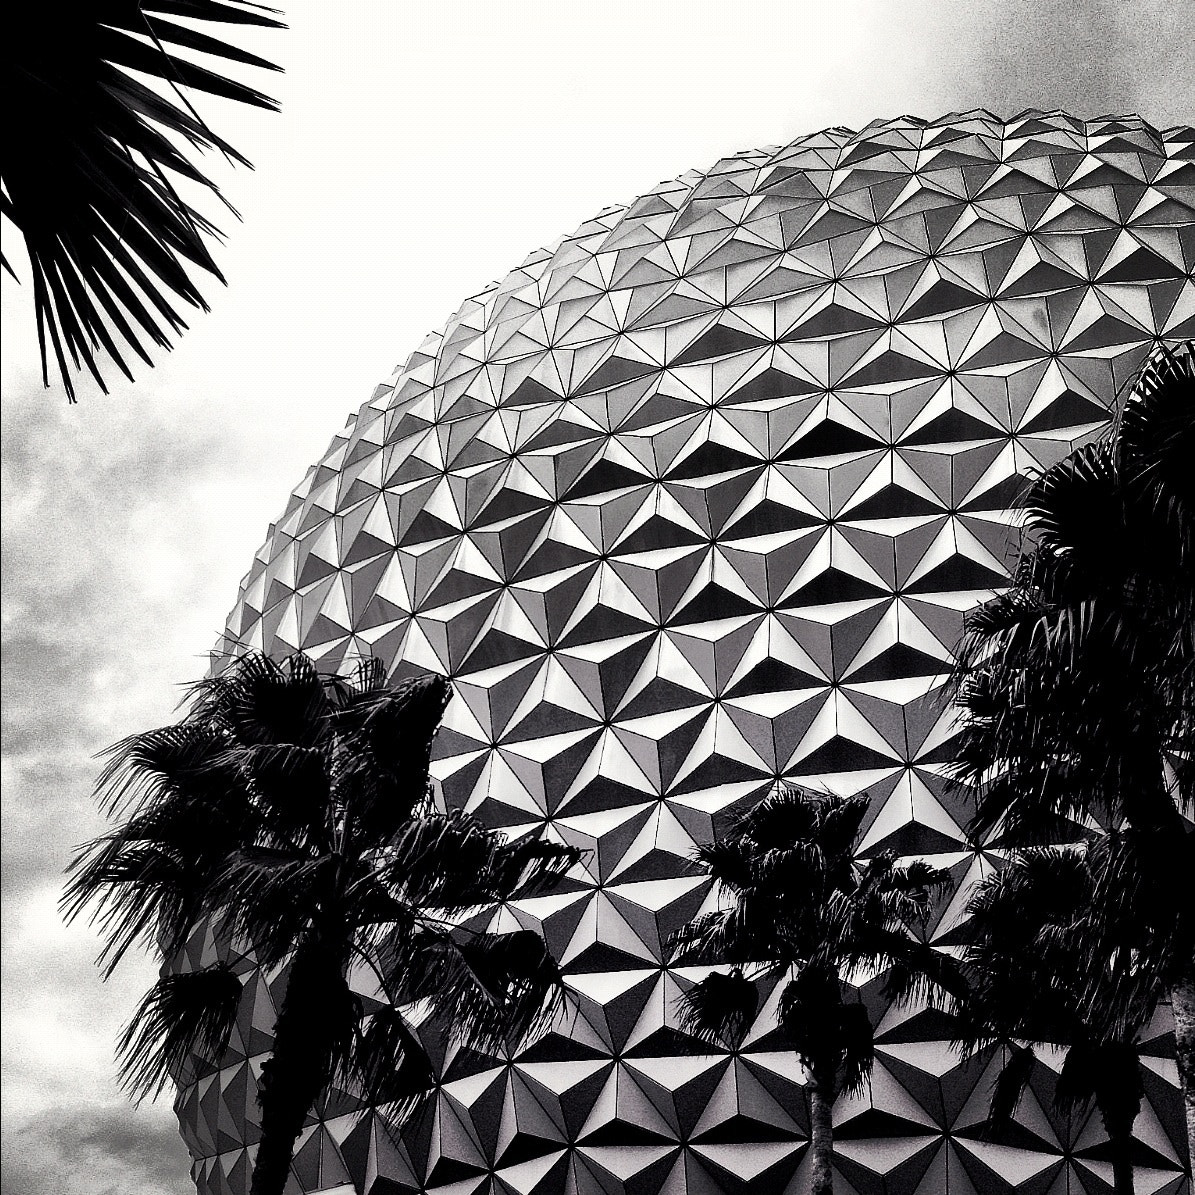 Photograph Architecturte in Epcot! by Majed Aldeeri on 500px